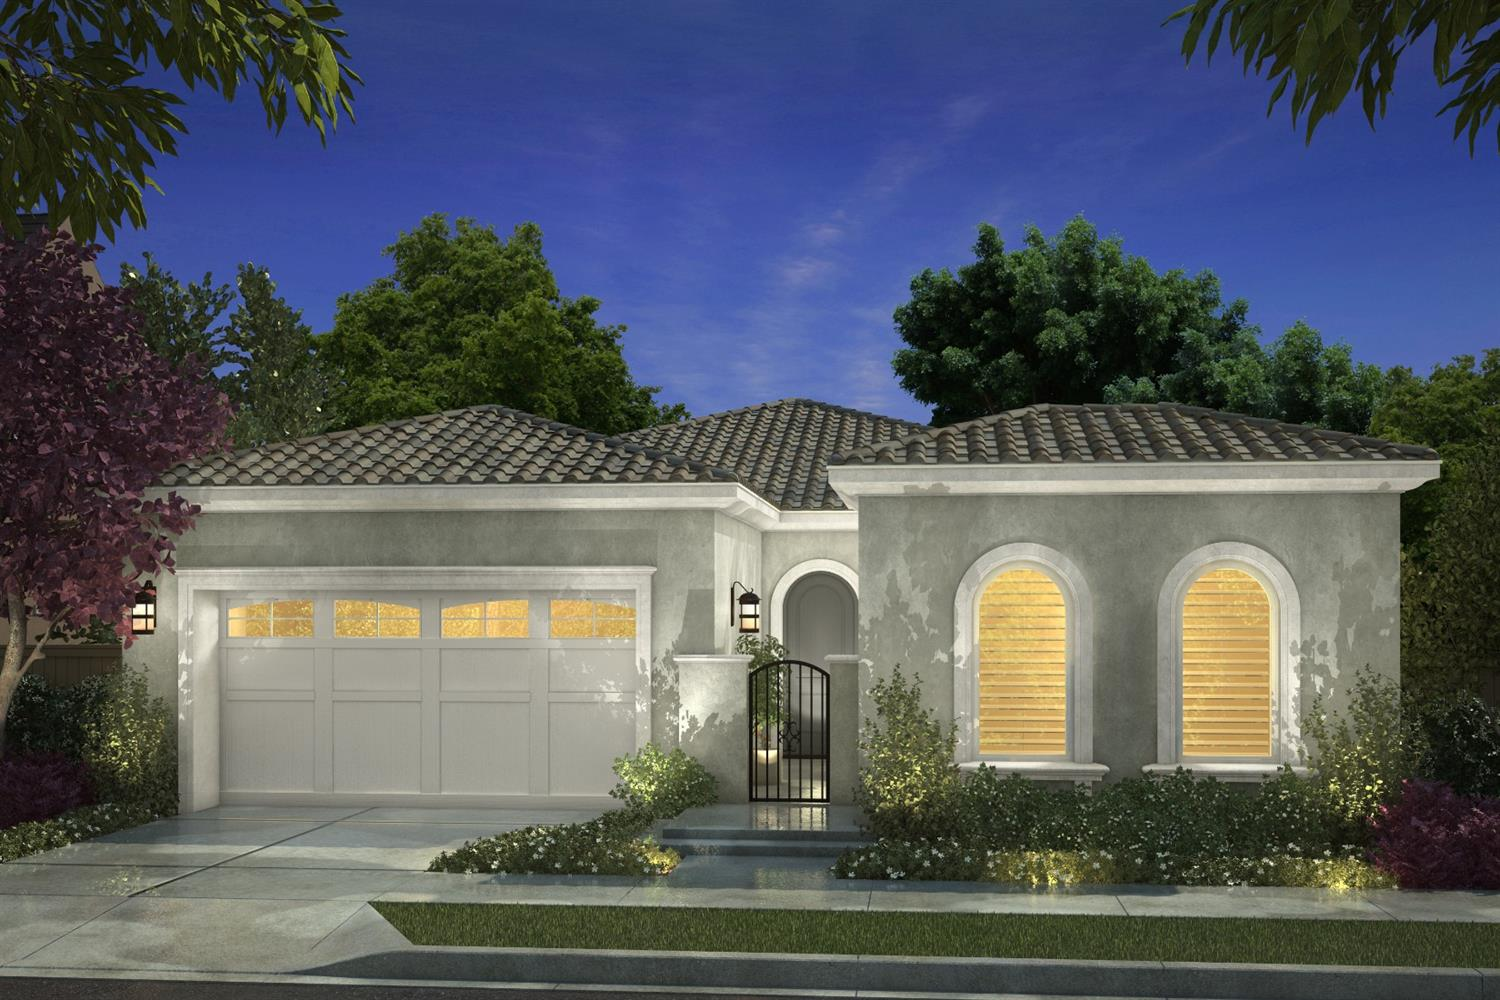 New Construction SINGLE STORY at McKinley Village brings a taste of urban luxury to the East Sacramento palette. Italian Elevation,3 bedrooms, 2.5 baths, Covered outdoor living space,Gourmet Kitchen and spacious Great Room are an entertainer's delight.